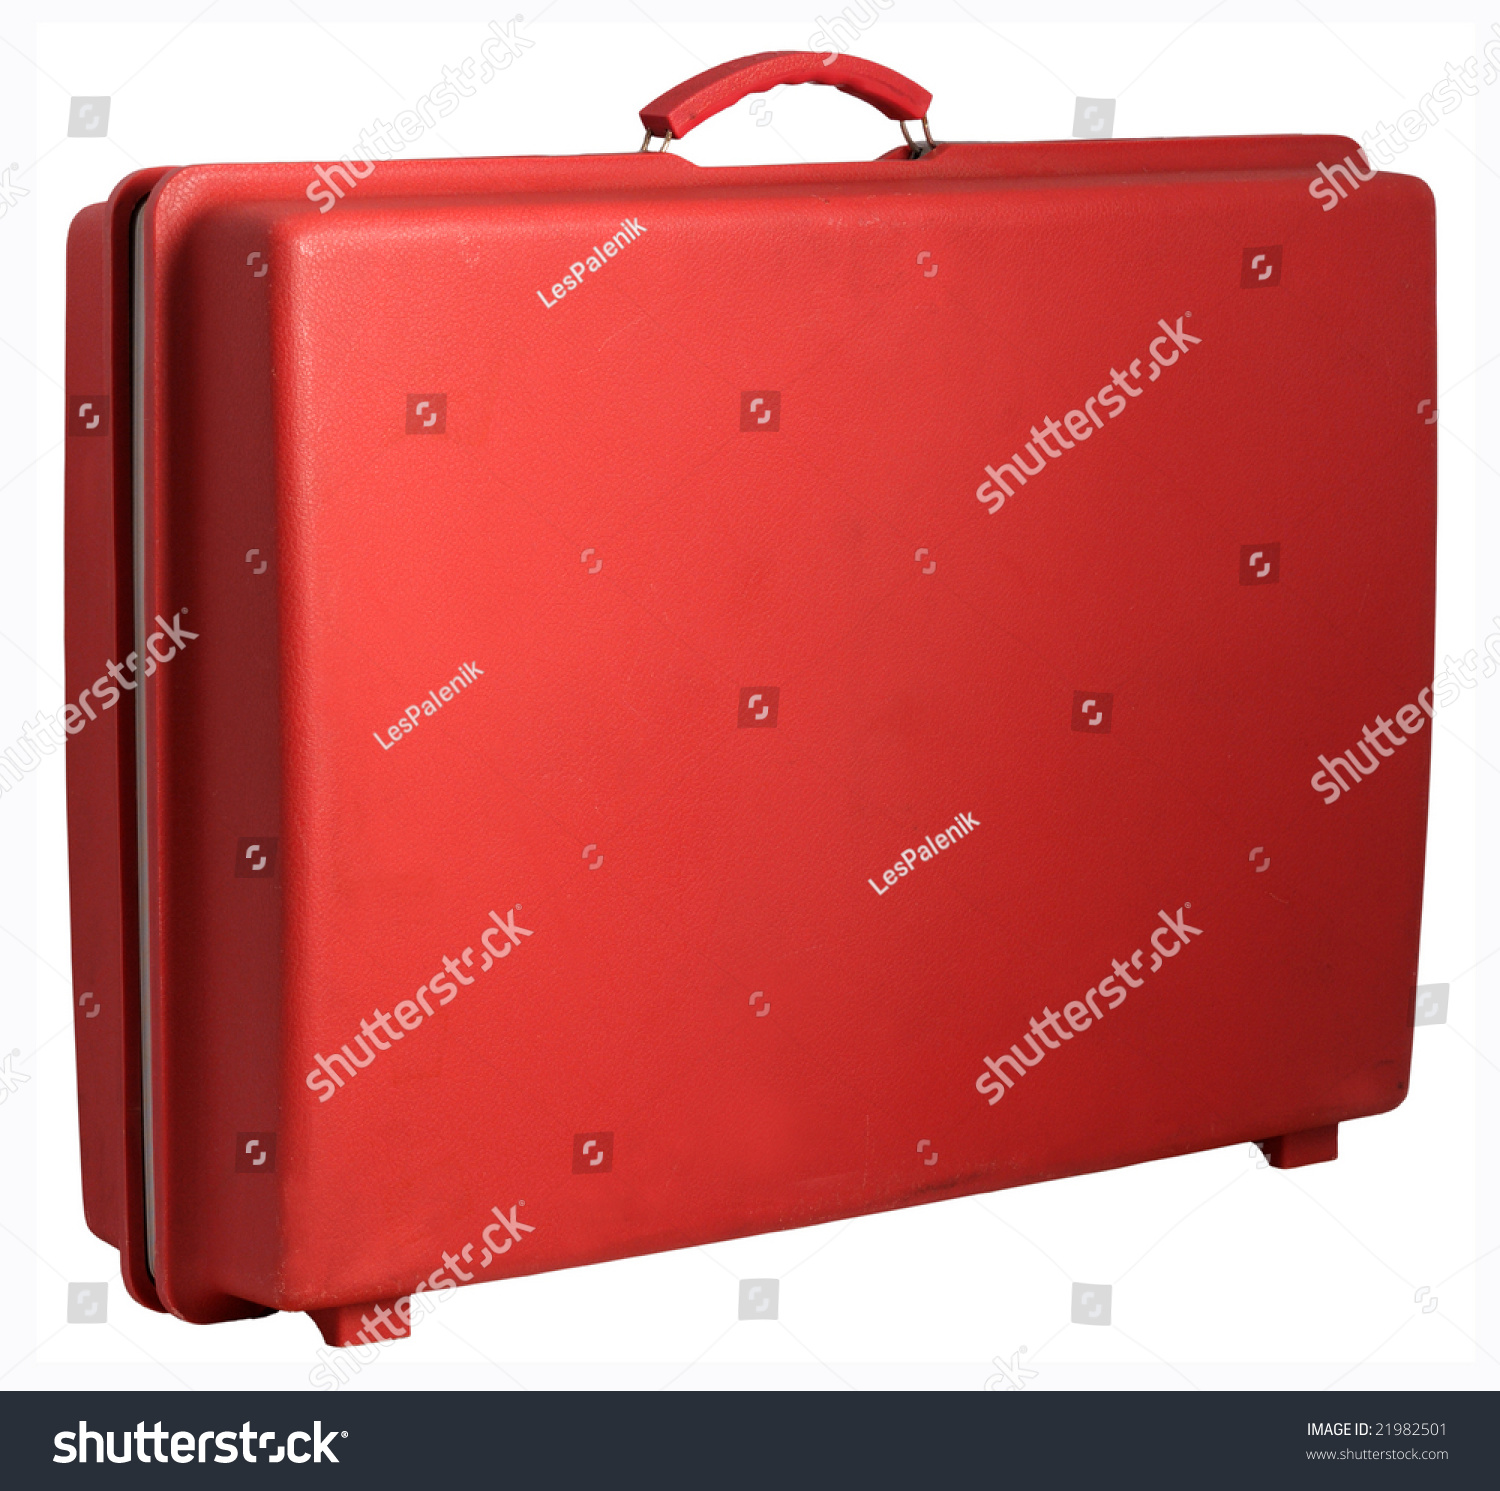 Red Vintage Suitcase Stock Photo 21982501 - Shutterstock